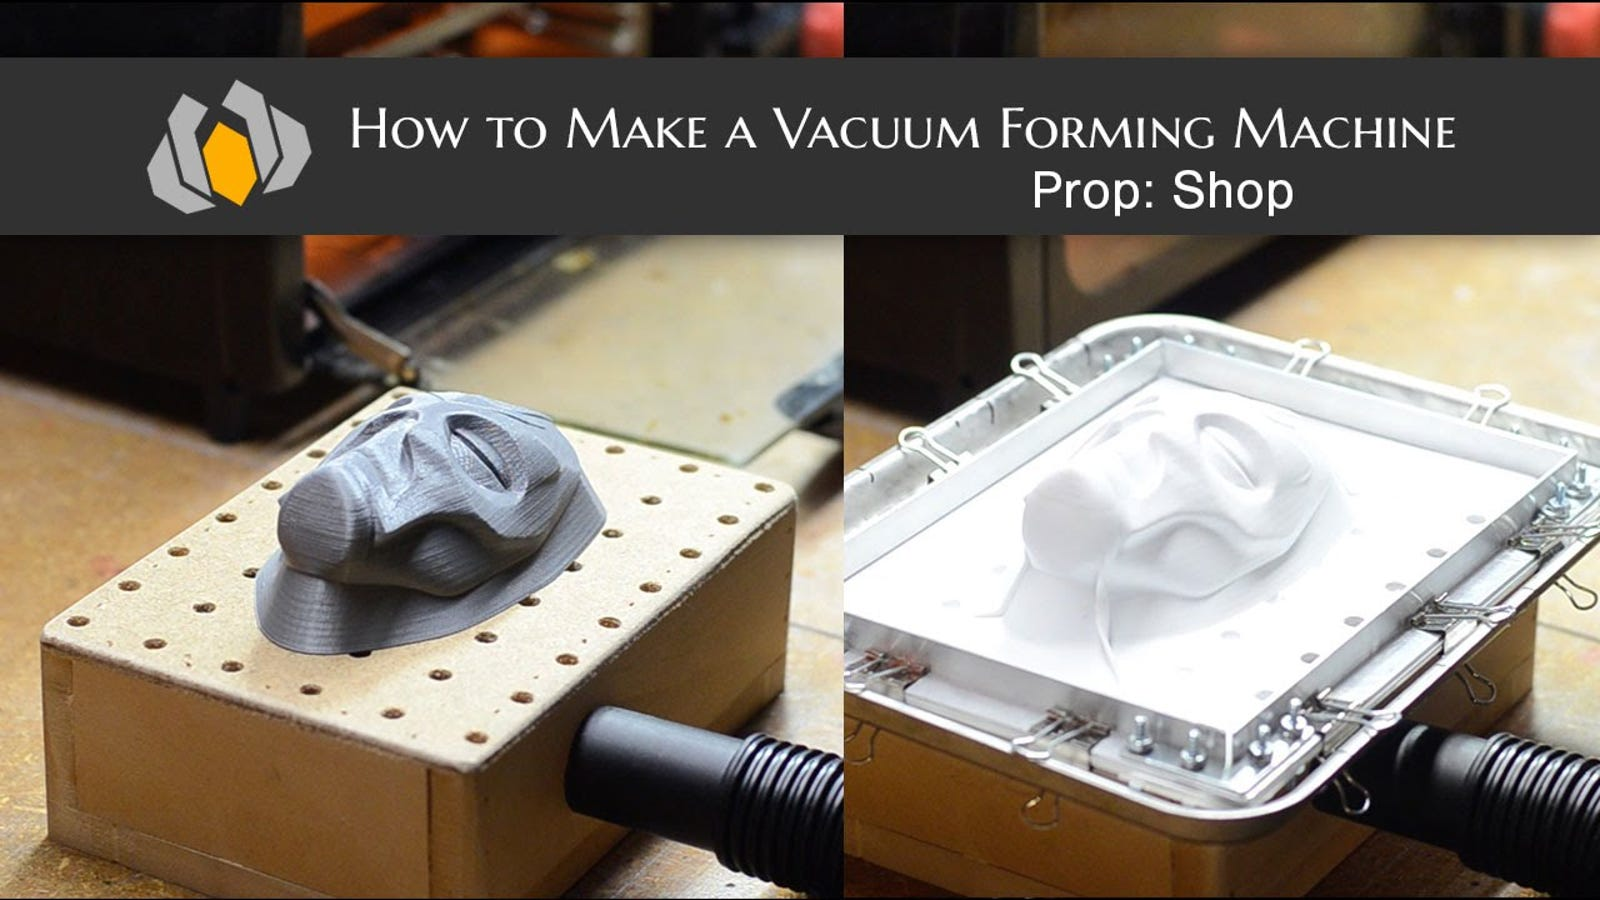 Here's How To Make A Vaccuforming Machine